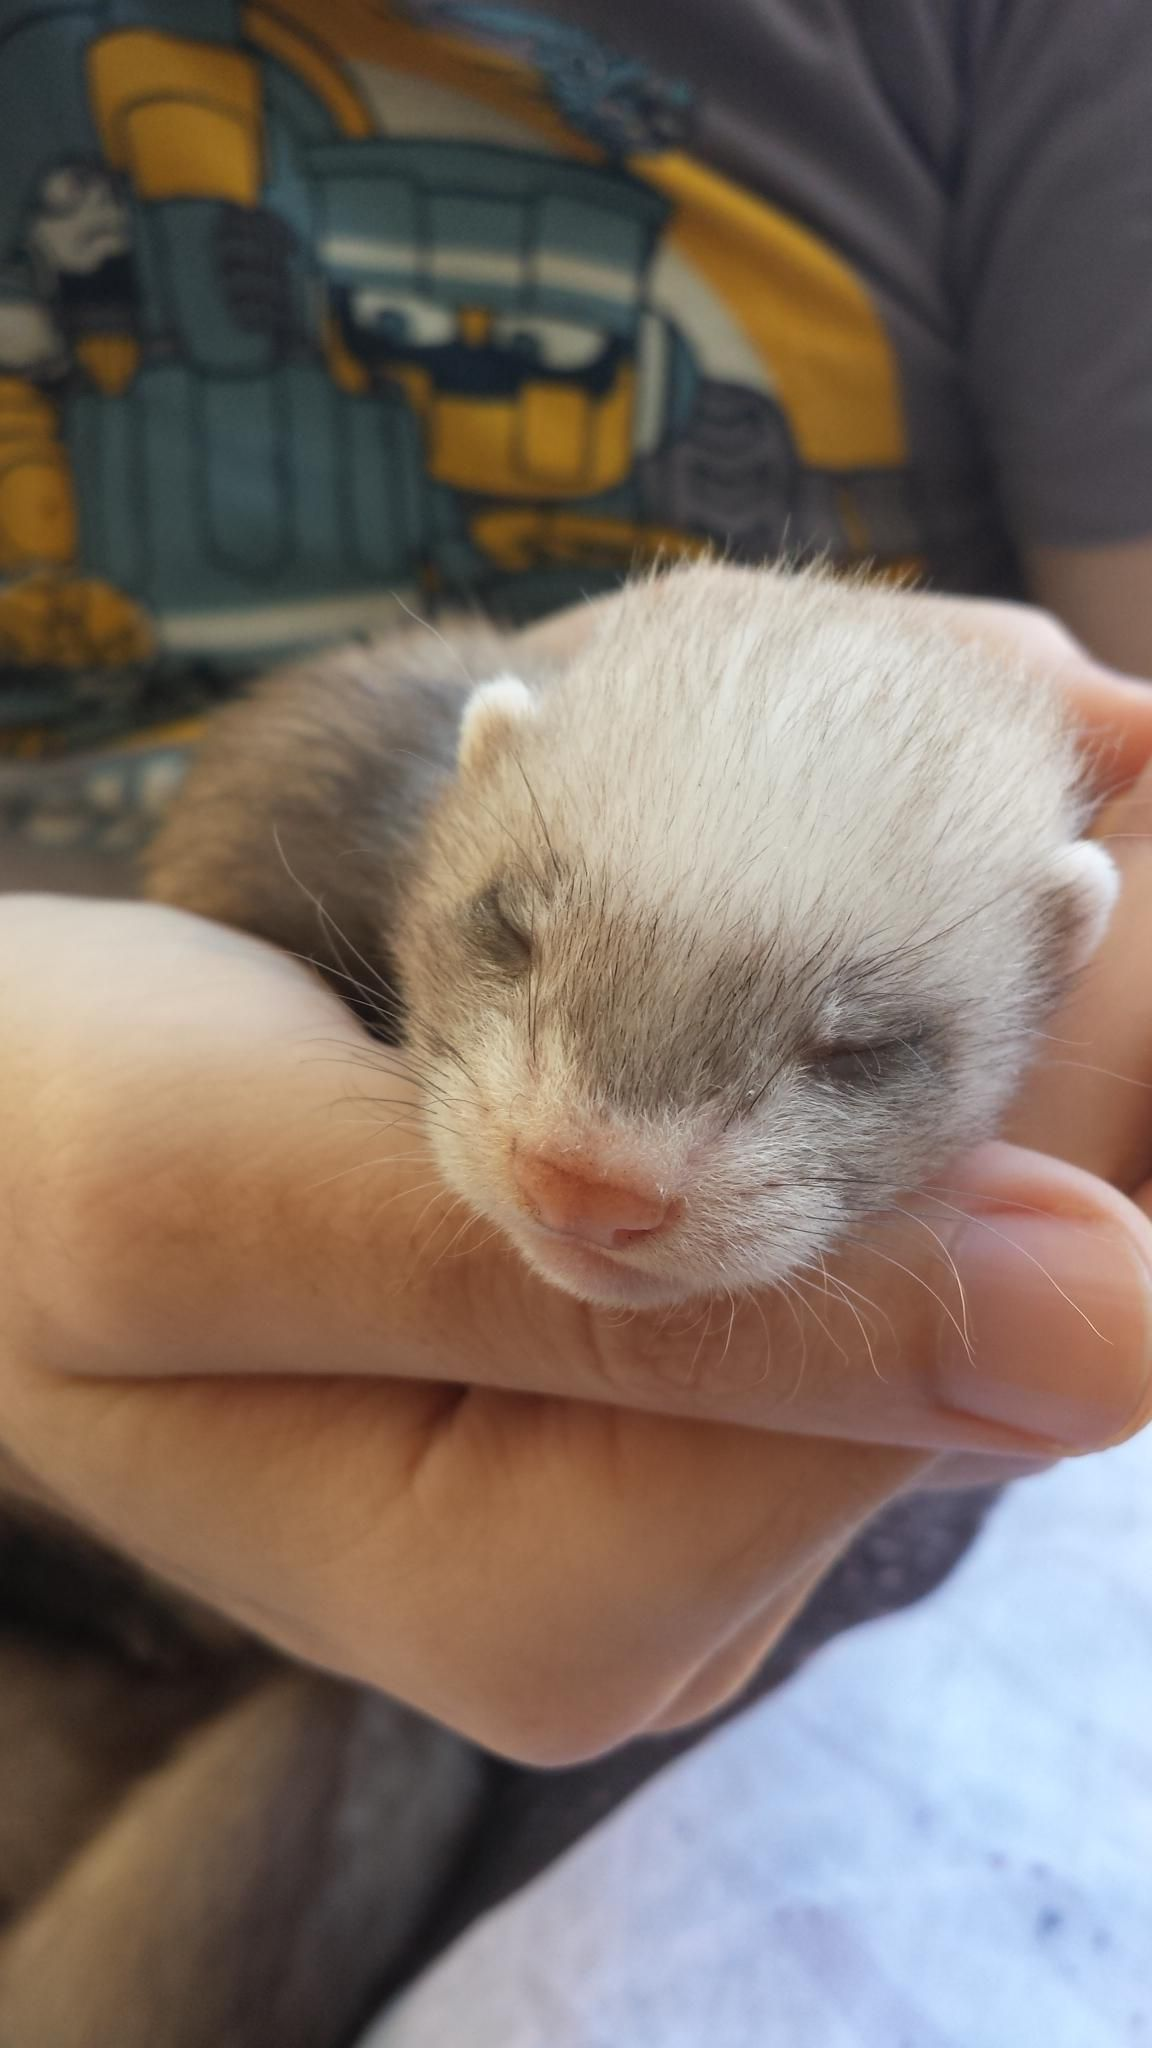 Some FAQs about ferrets